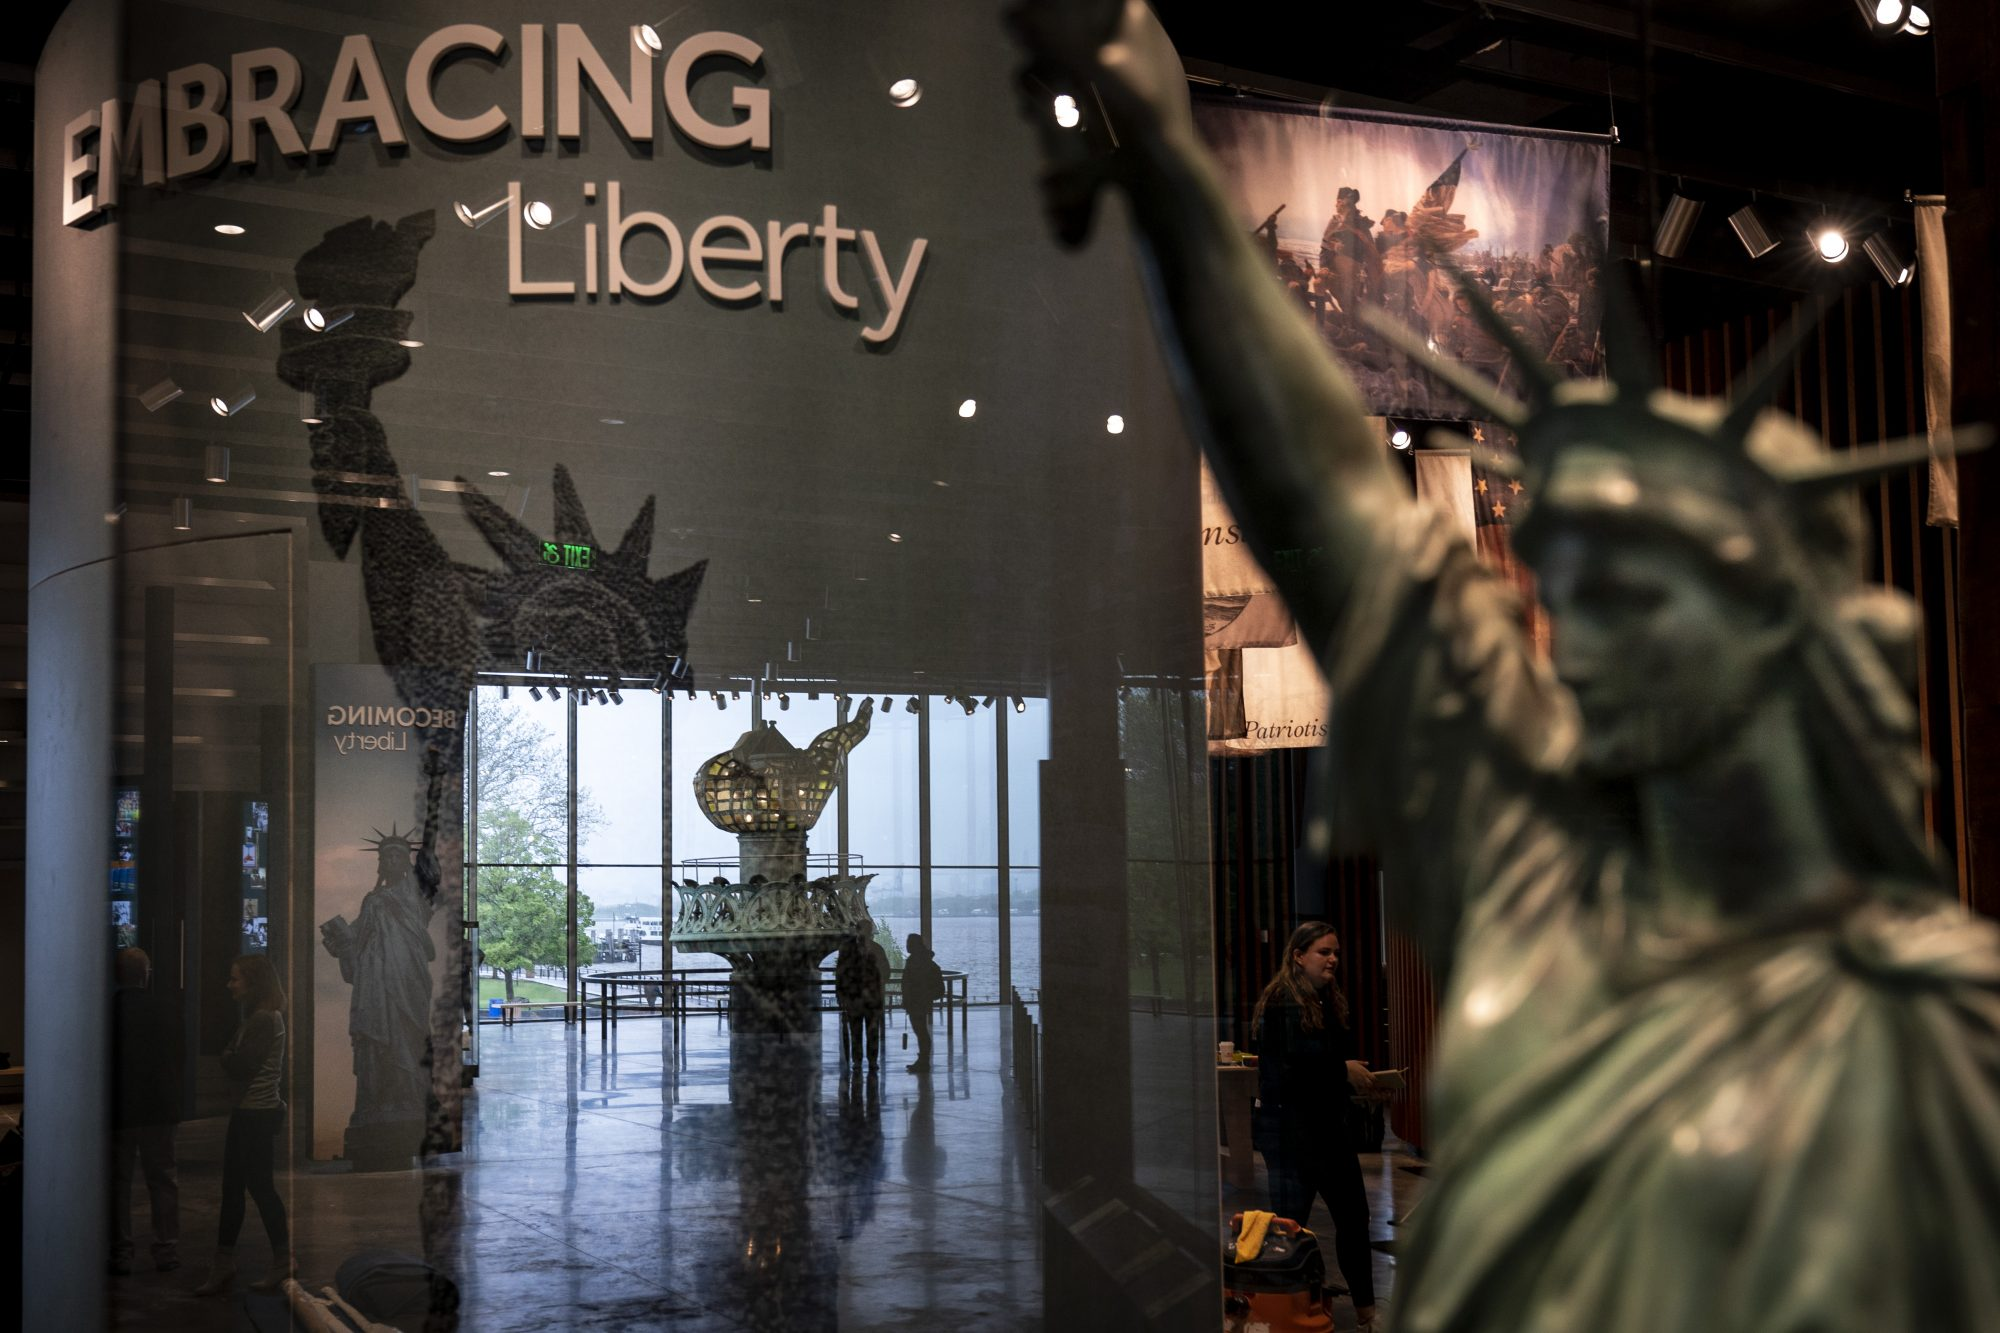 Now open on Liberty Island, the 26,000-sq.-ft. structure celebrates the universal symbol of freedom and brings the immigrant experience to life. Admission is free.